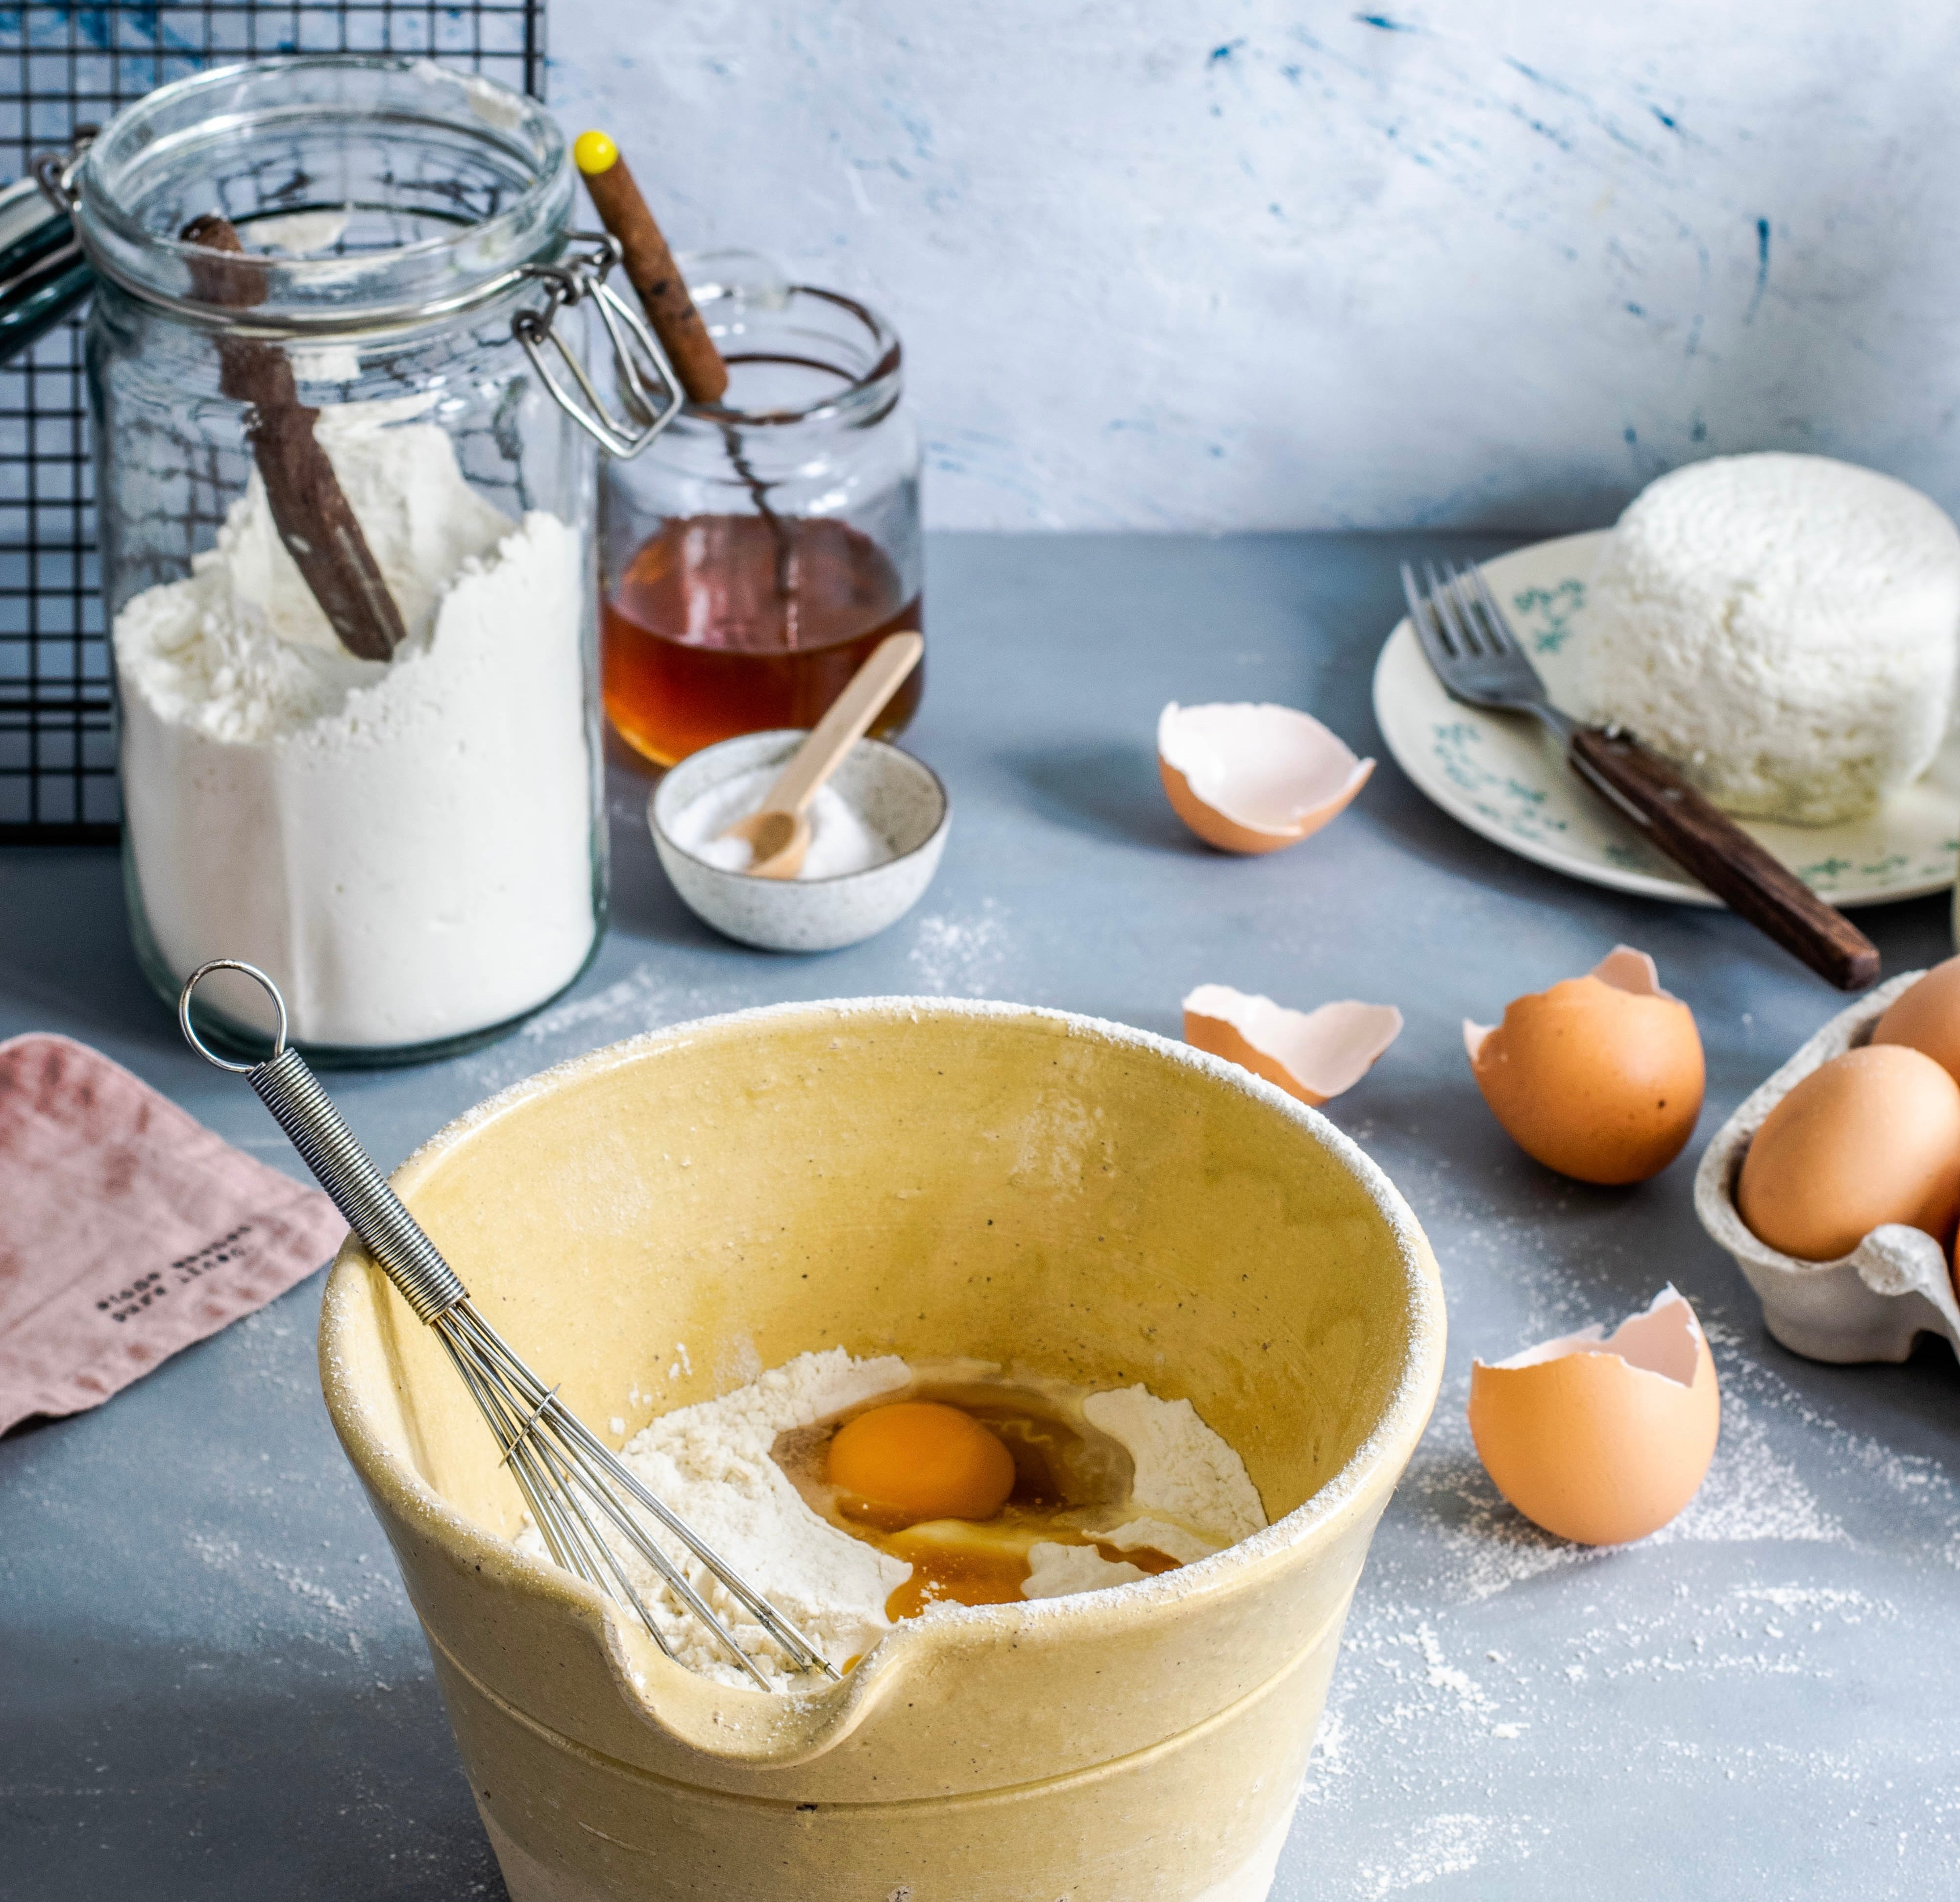 baking with honey - a rustic baking scene featuring a bowl with flour, eggs, honey, and other ingredients in unmarked jars for baking